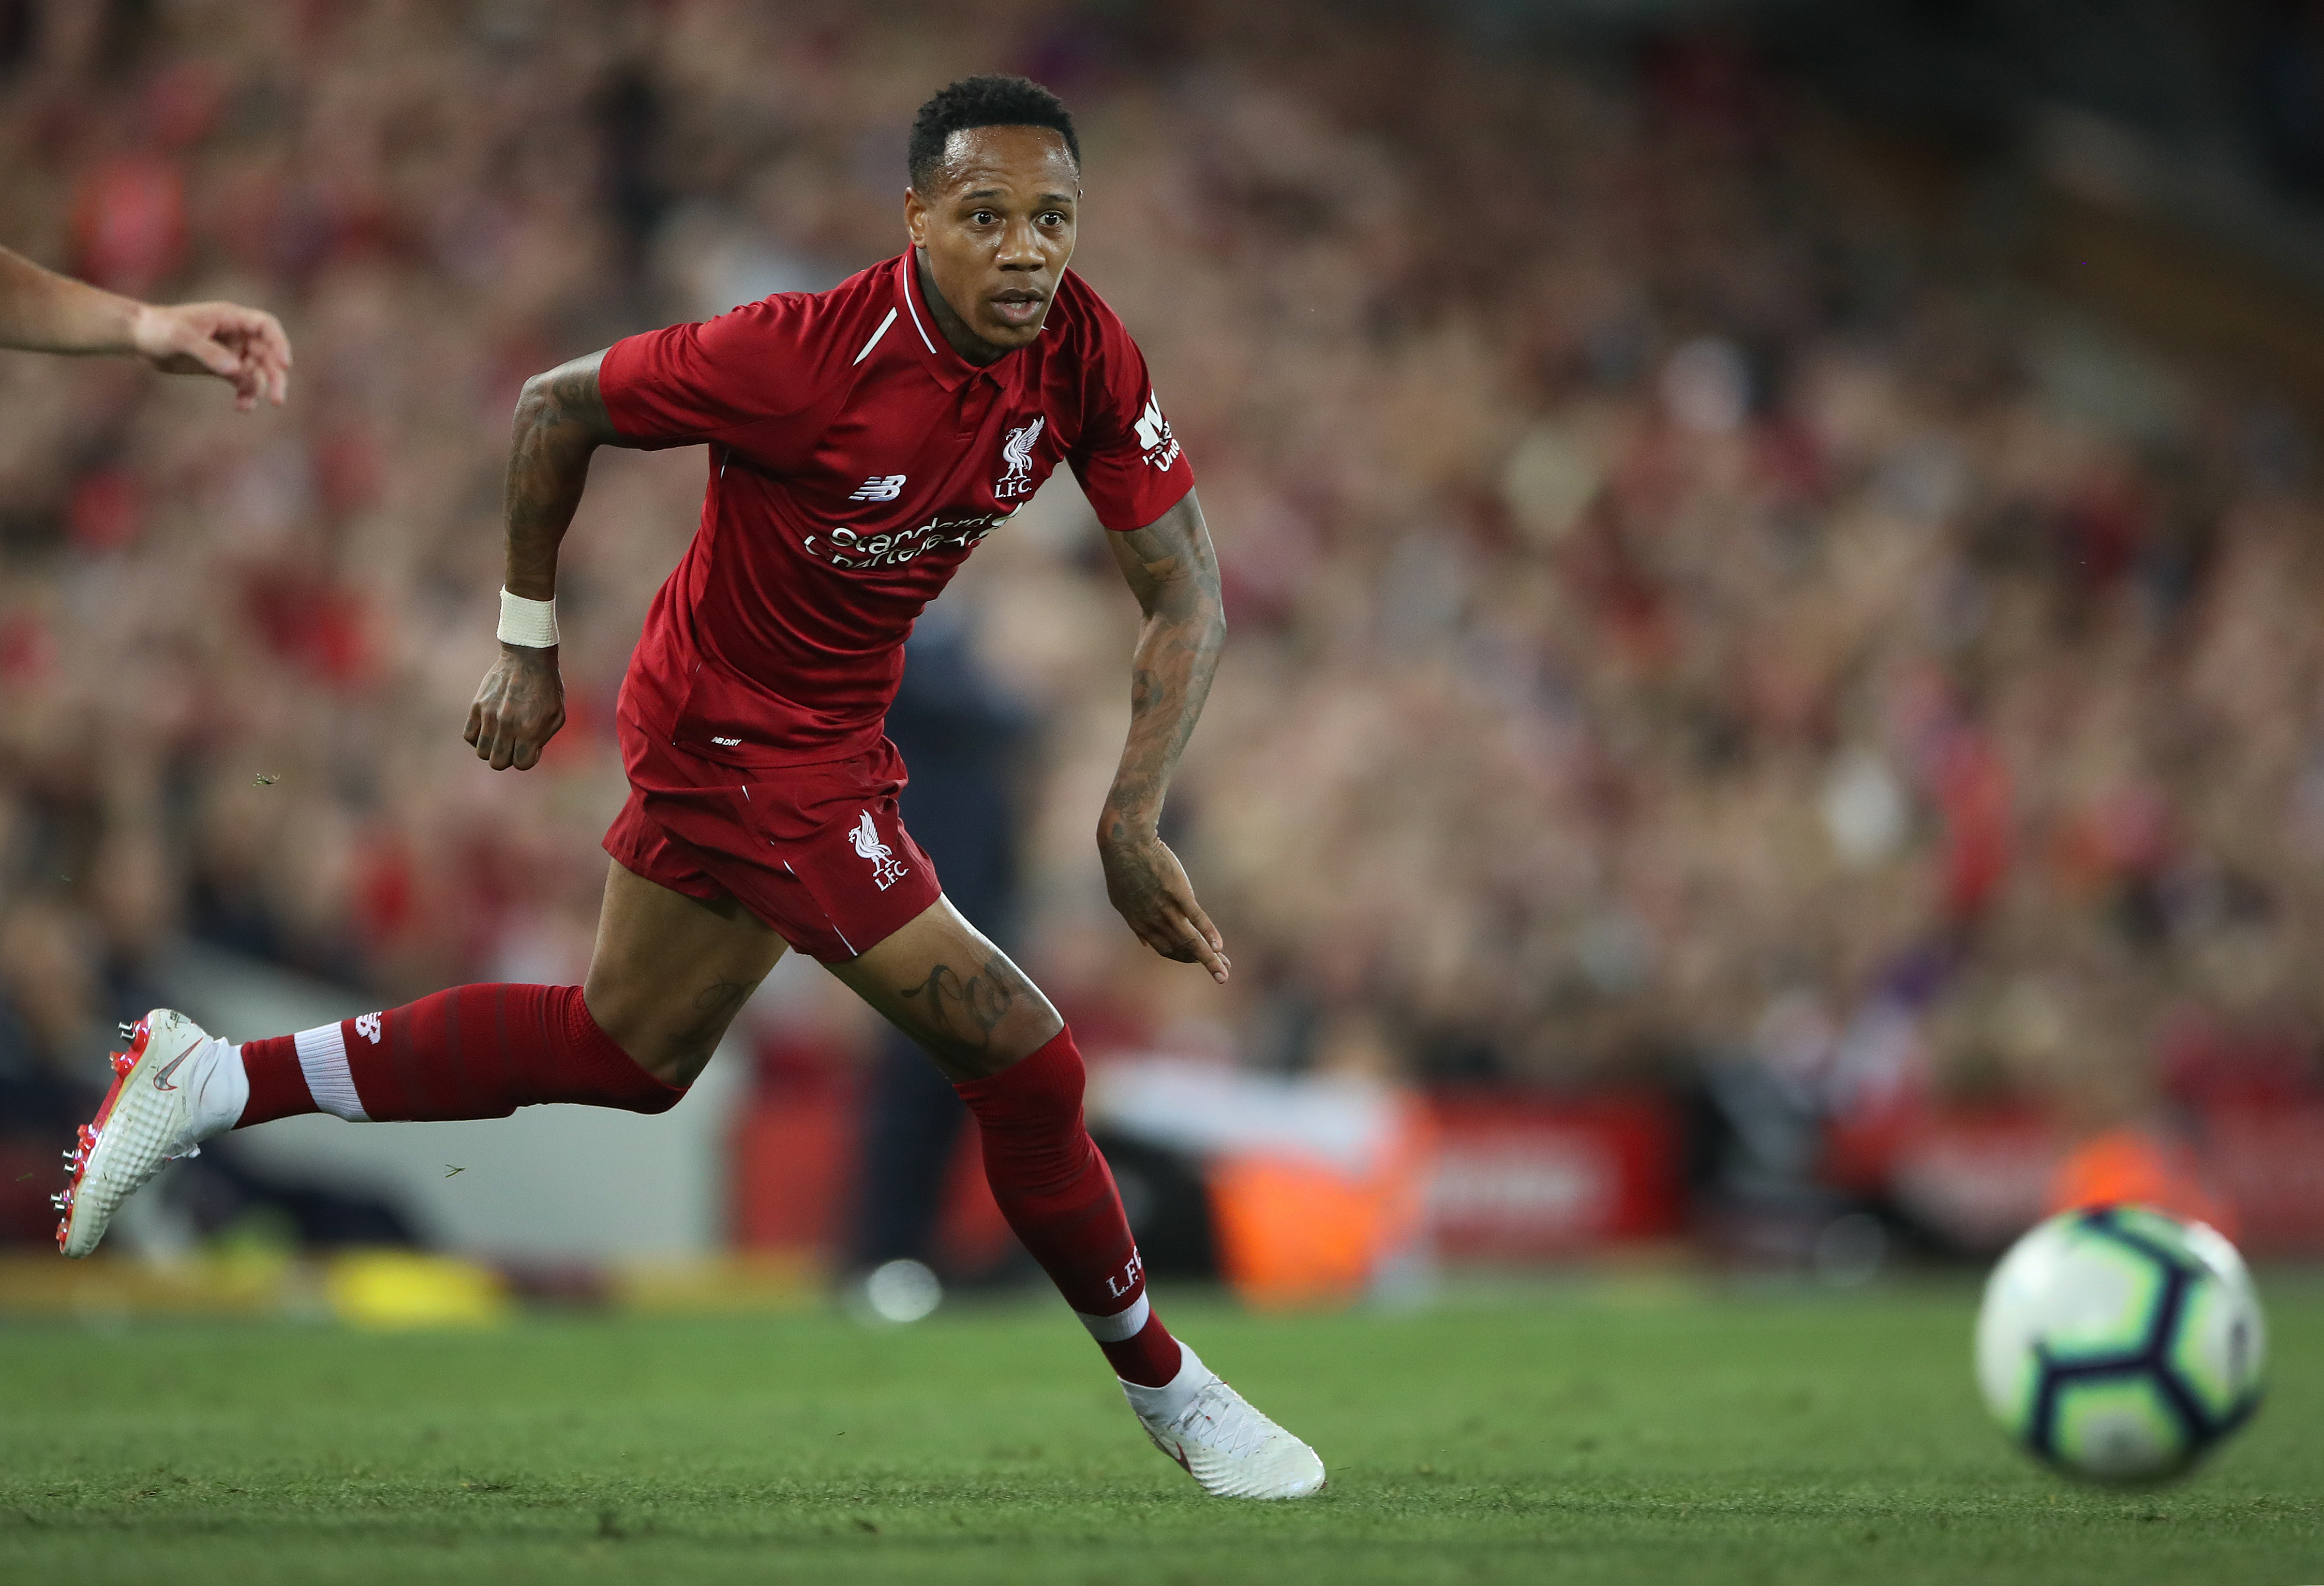 Clyne taking his opportunity